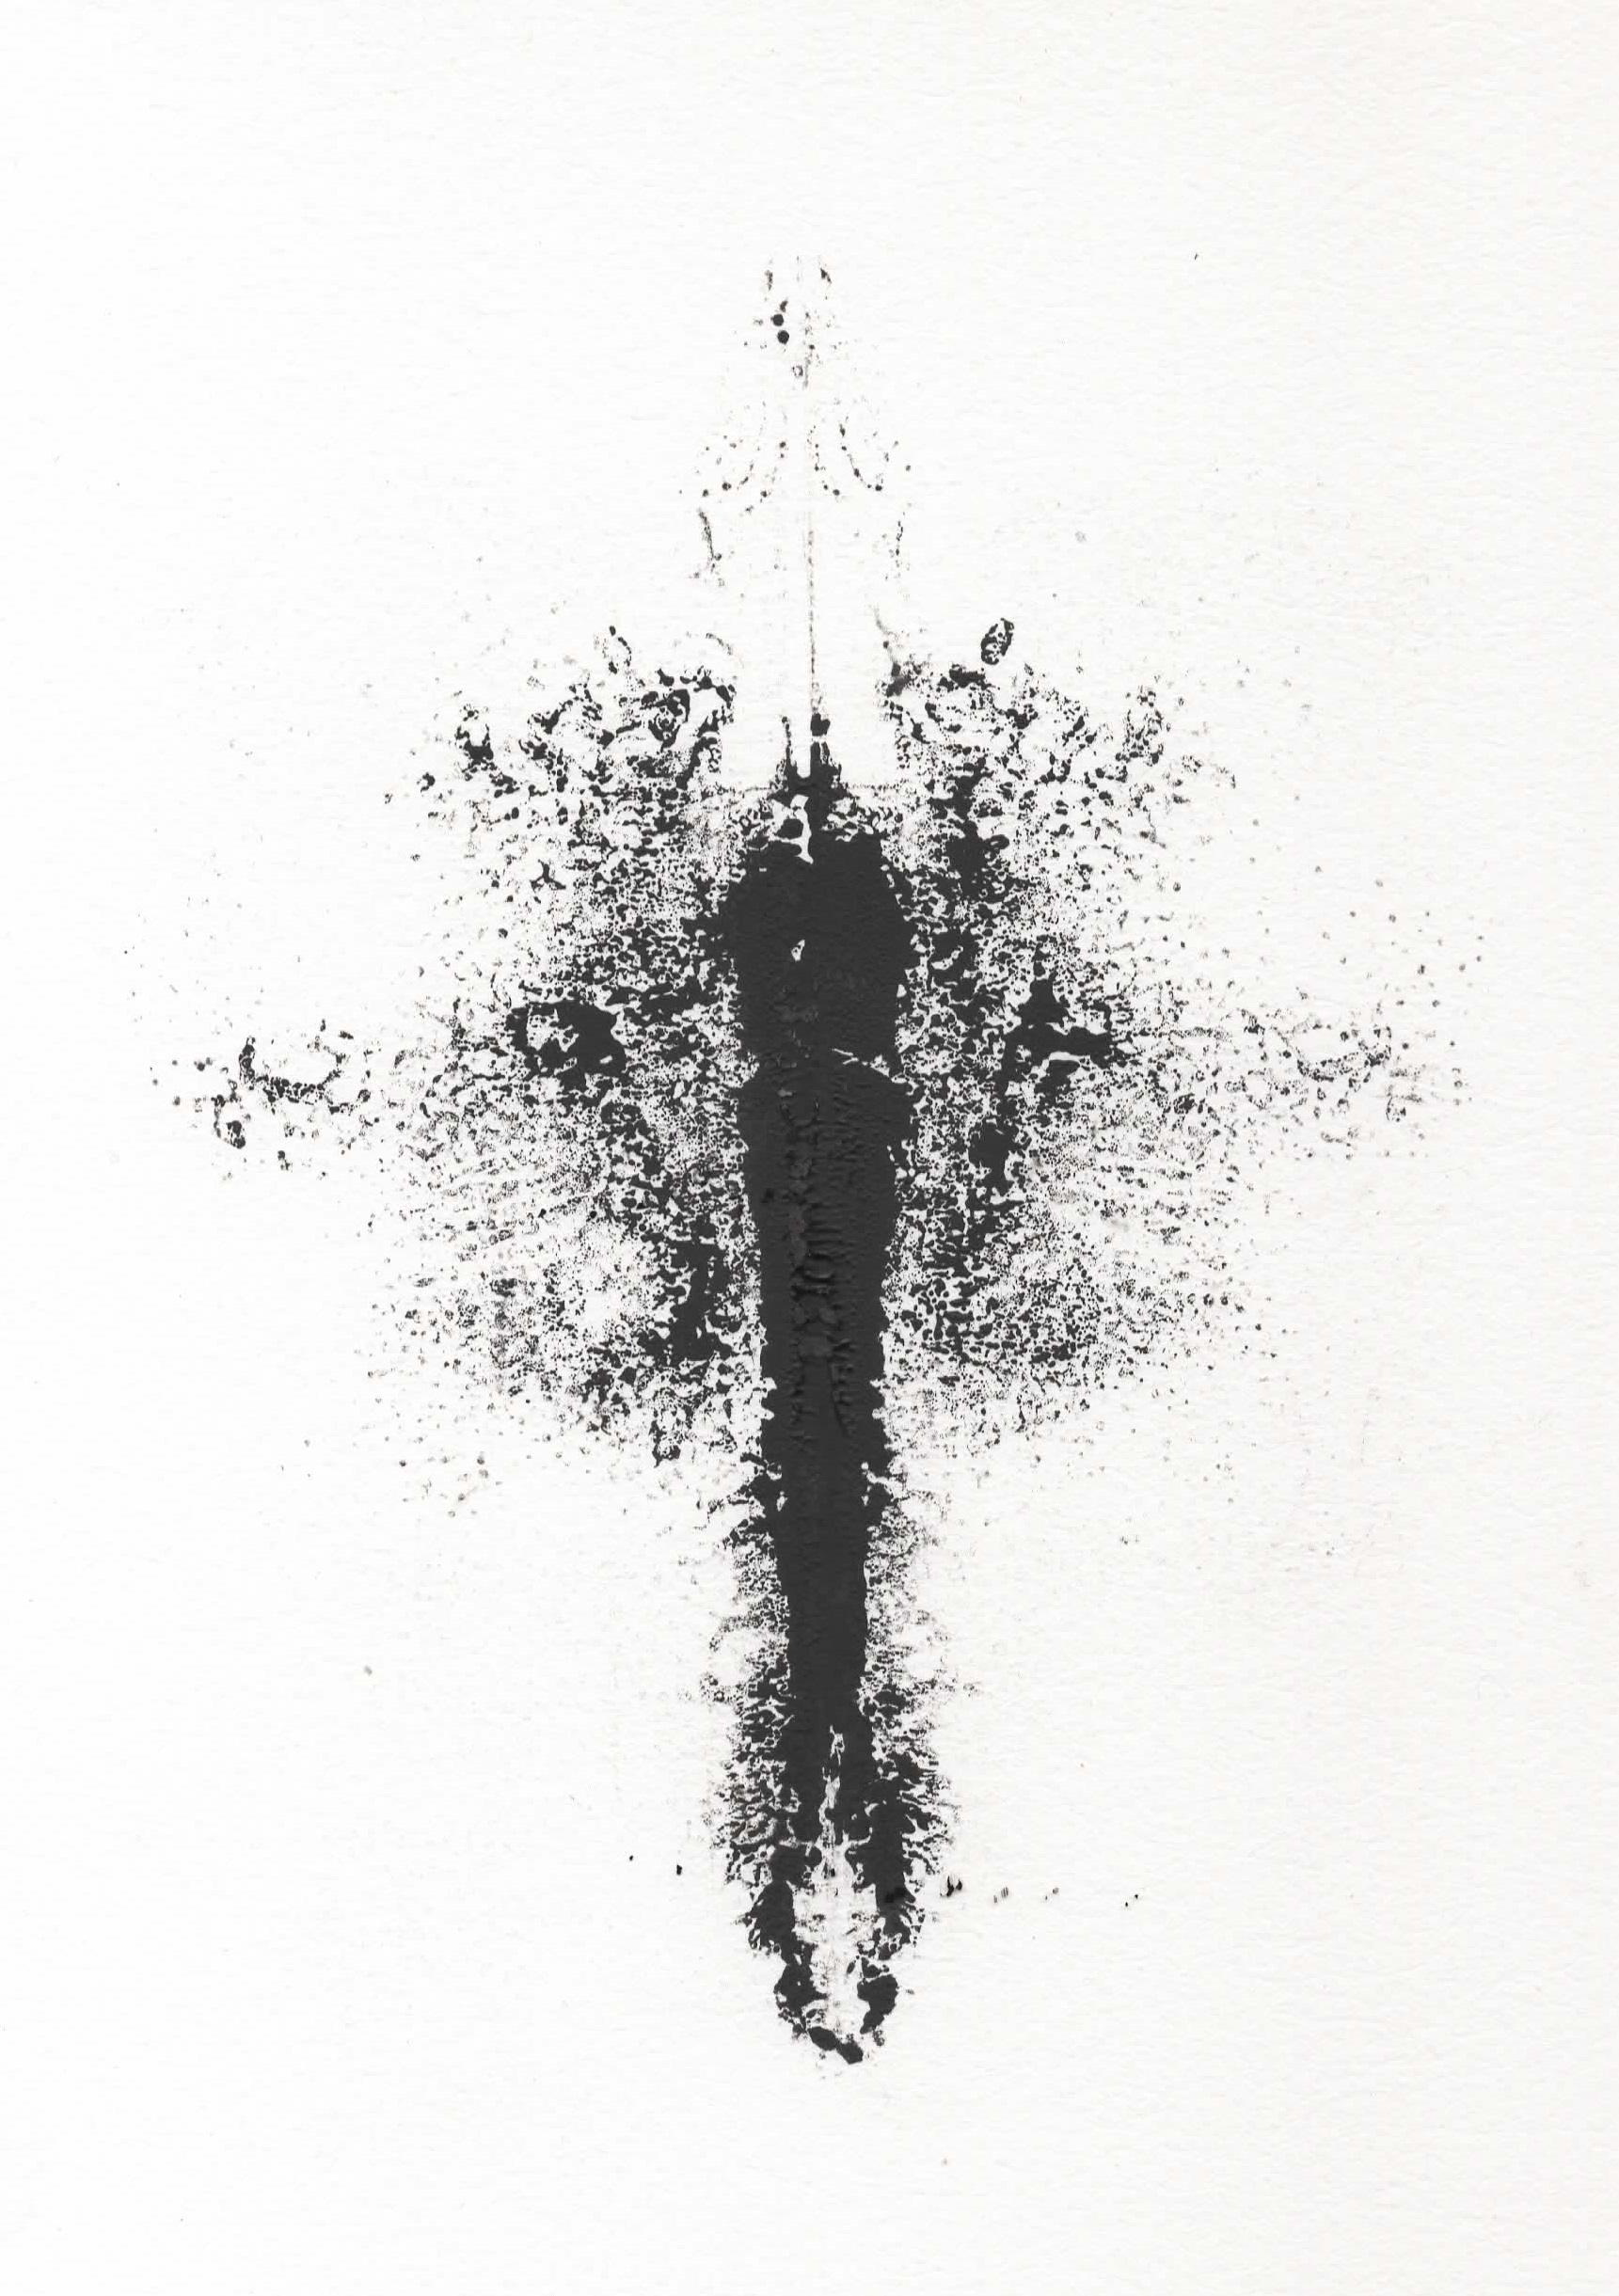 What is this inkblot?